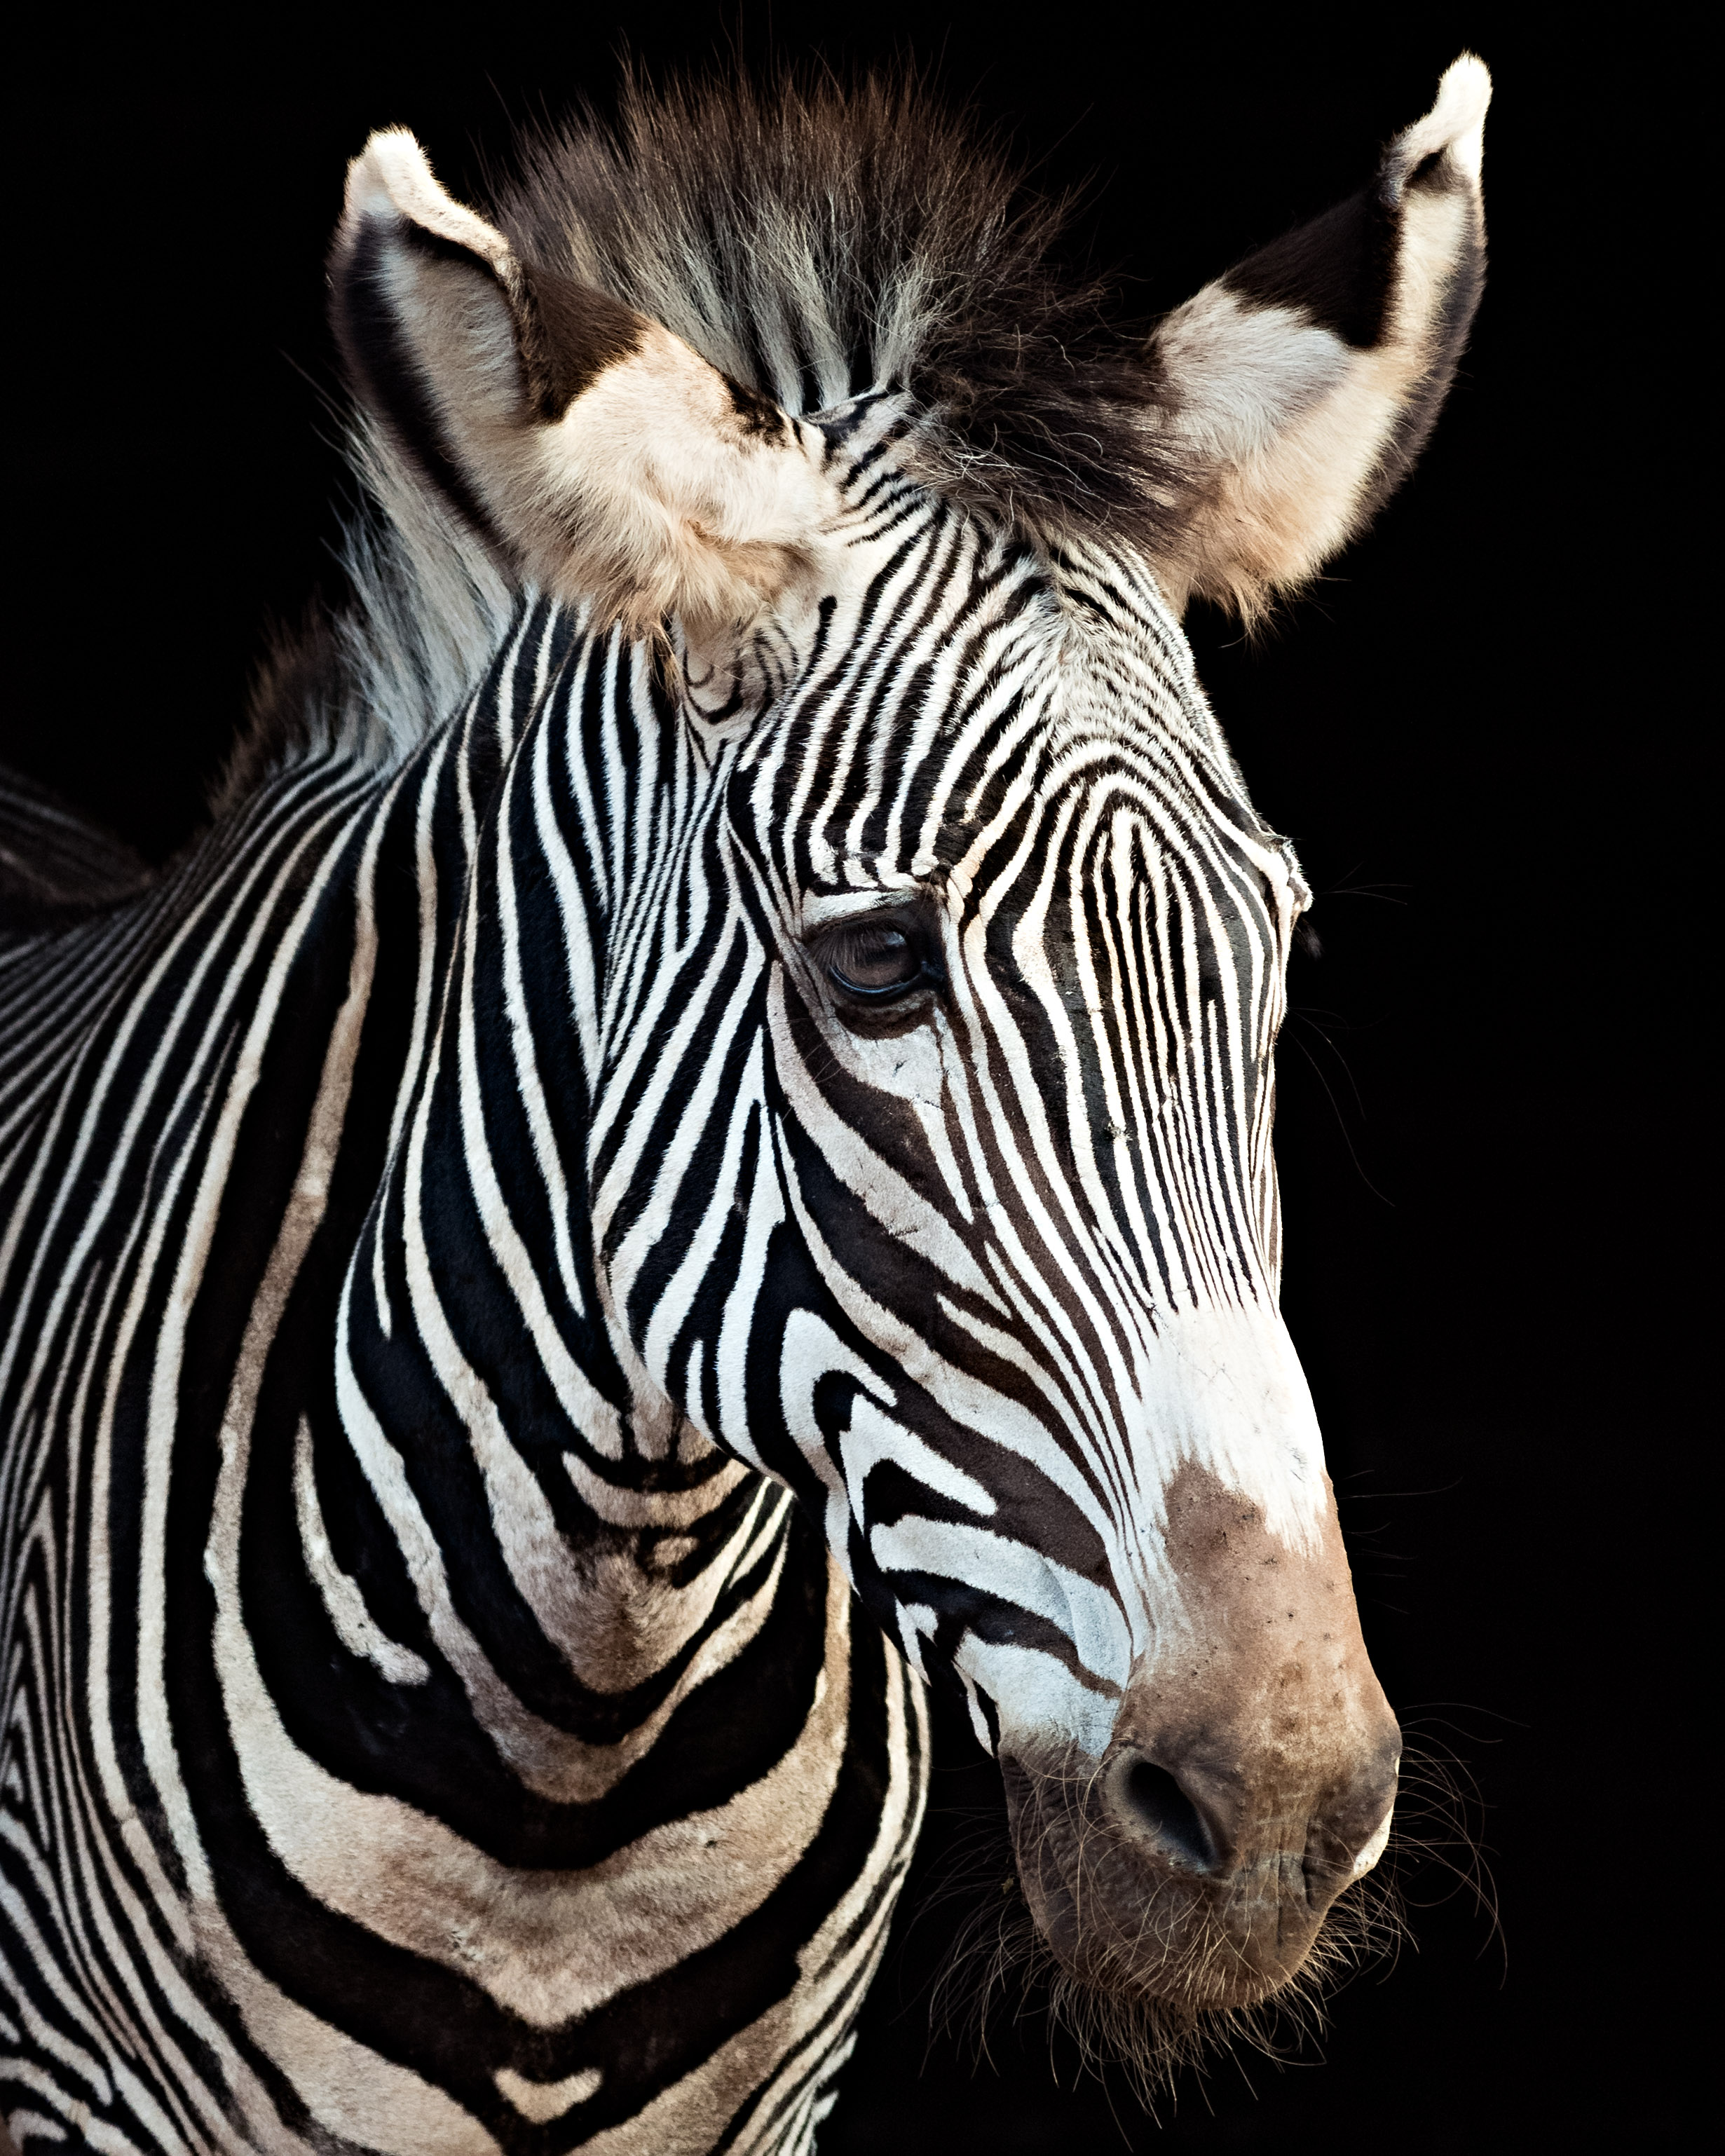 Zebra-portrait-pierre-melion (1 of 1).jpg